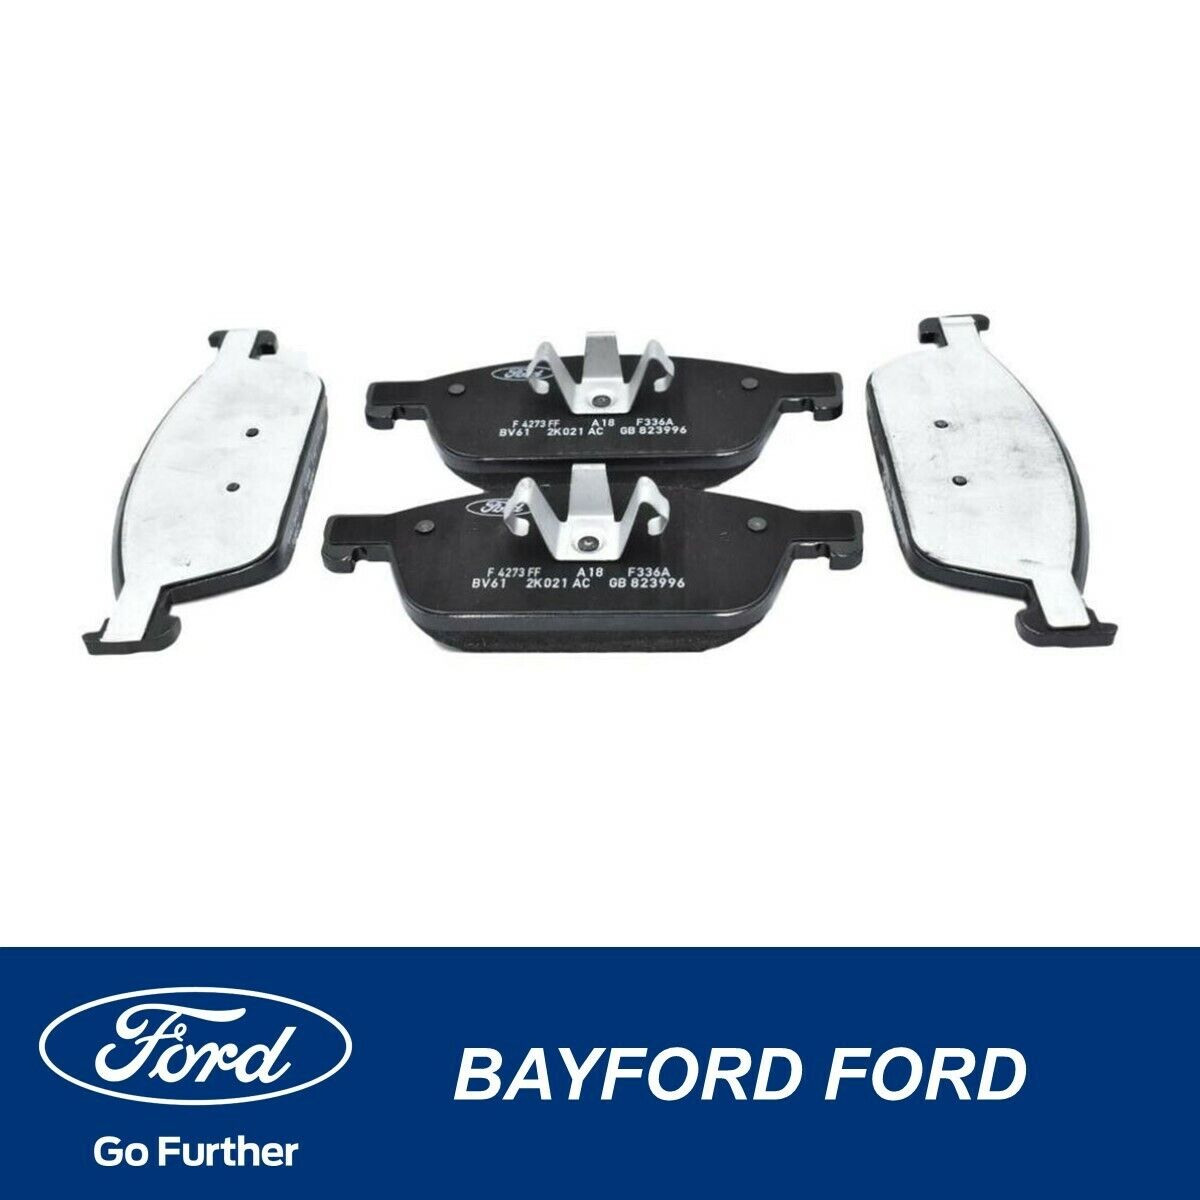 Front And Rear Ceramic Brake Pads For 2016-2018 Ford Focus RS